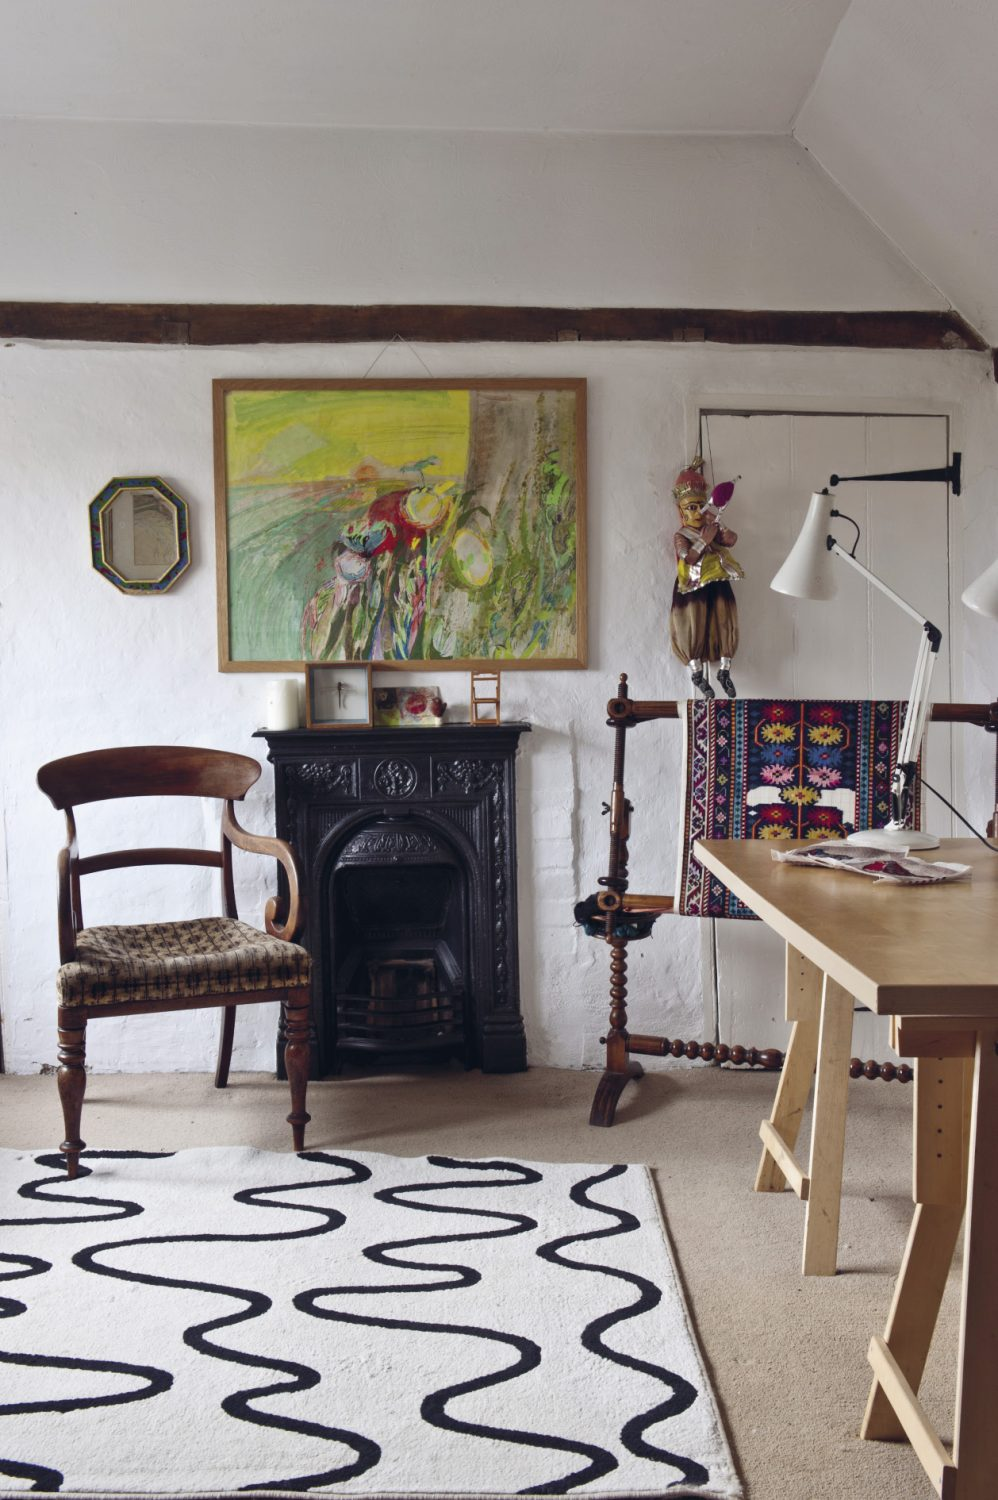 In the second bedroom one of Roger Nicholson's later paintings hangs above the fireplace. The composition is more abstract and the colours are arresting. Vivid scarlet, lime and gold are juxtaposed with rose pink and lilac. The colours seem to shimmer as if with the heat of a summer's day